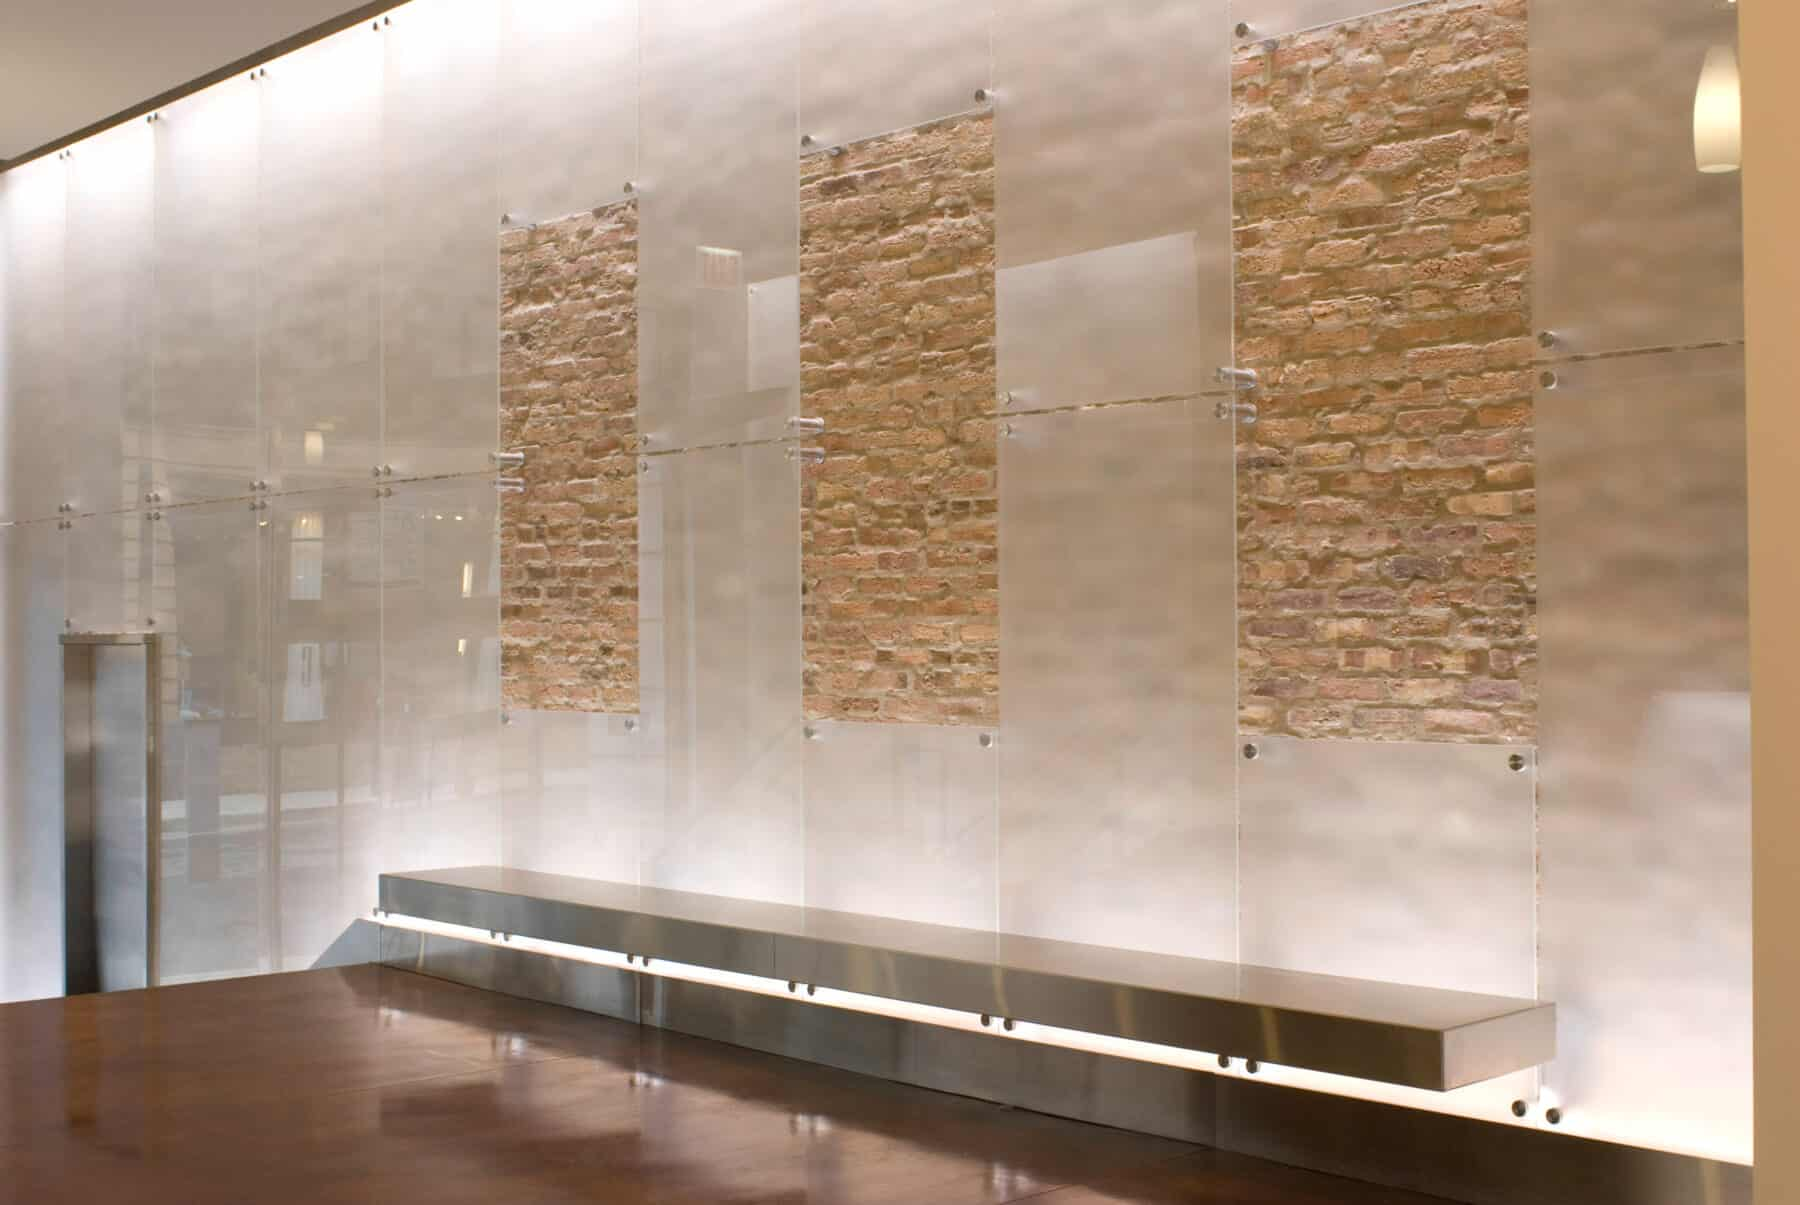 Custom Etched Glass Wall Panels with Metal Floating Bench on Brick Wall for West Jackson Lobby Remodel by Commercial Builder & General Contractor Structural Enterprises